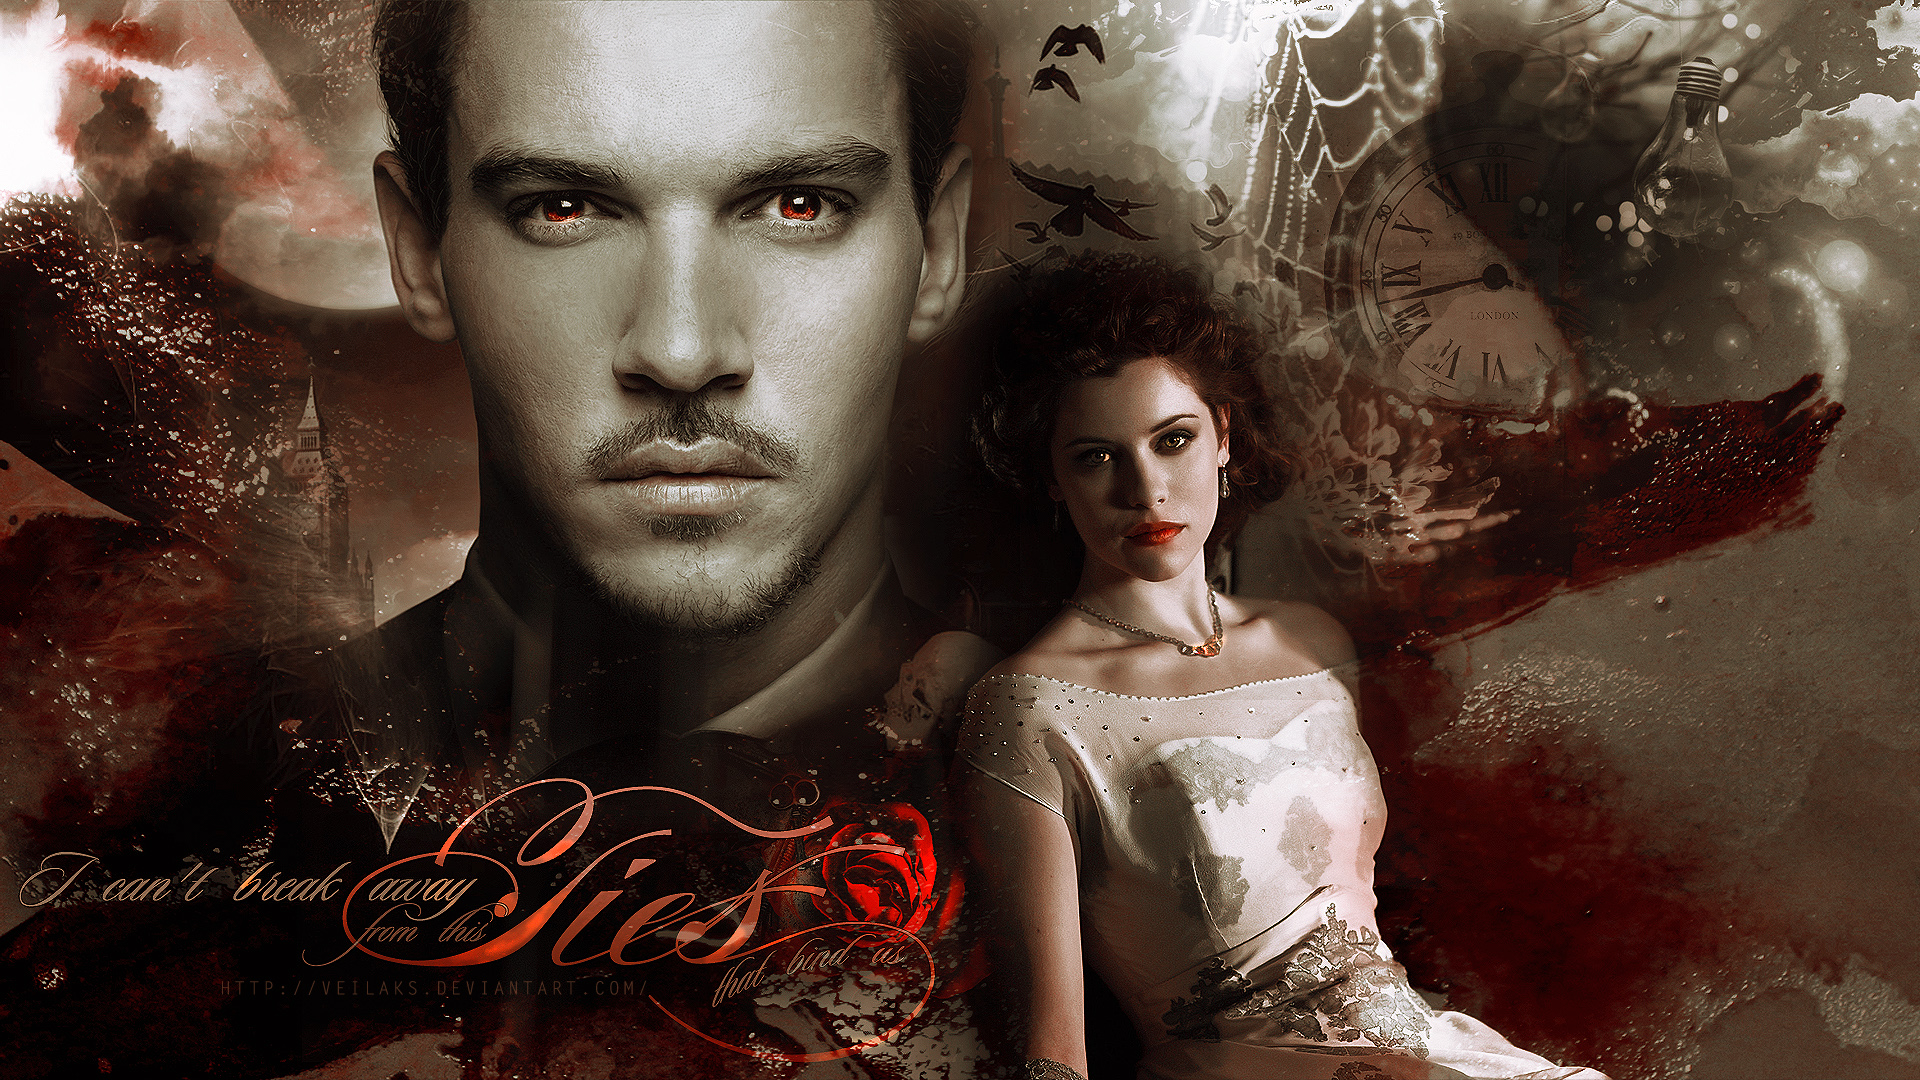 dracula hd wallpapers - photo #42